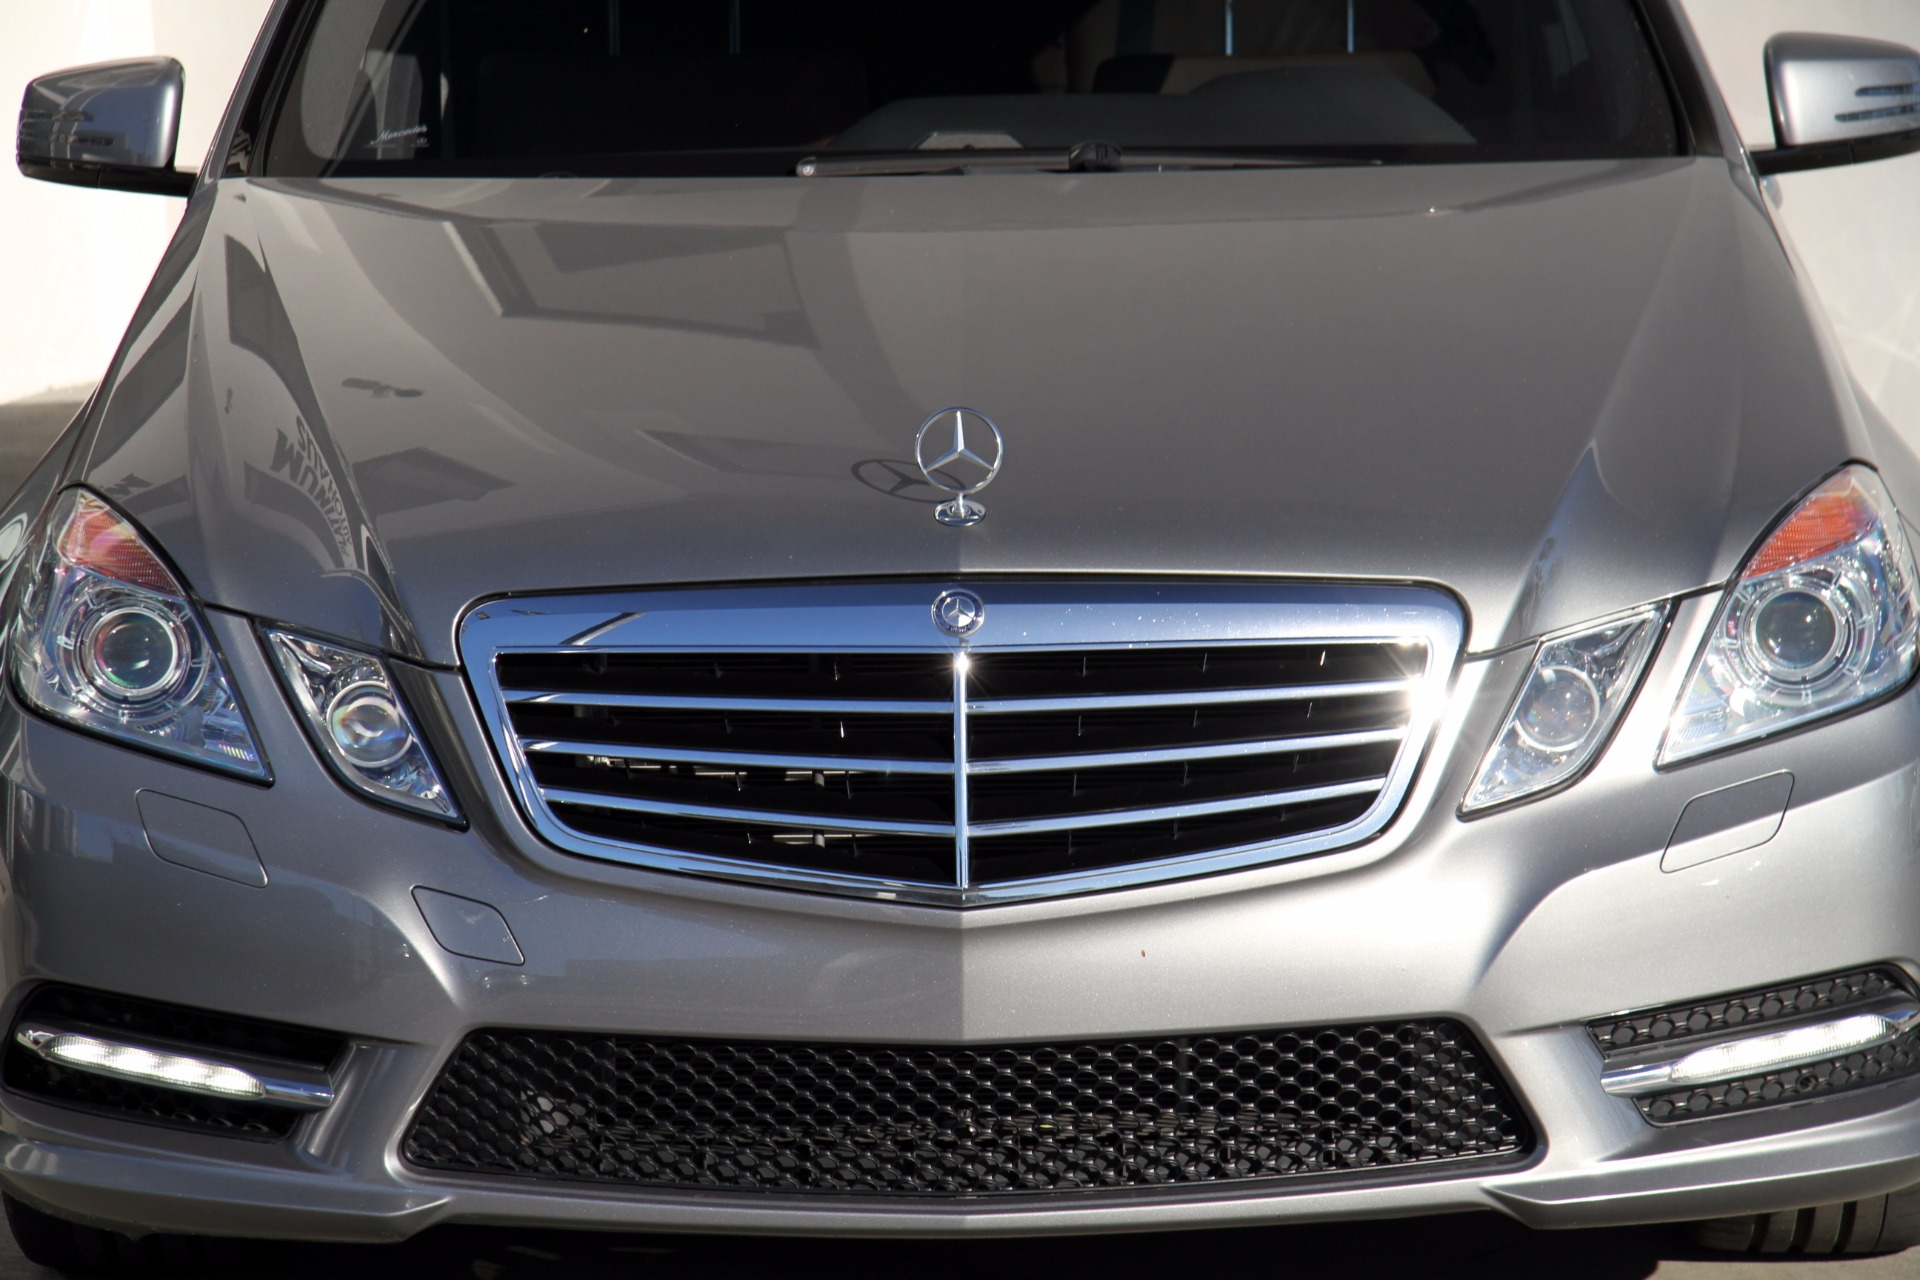 Free Vehicle History Report By Vin >> 2012 Mercedes-Benz E 350 Sport 4MATIC Wagon Stock # 554584 ...